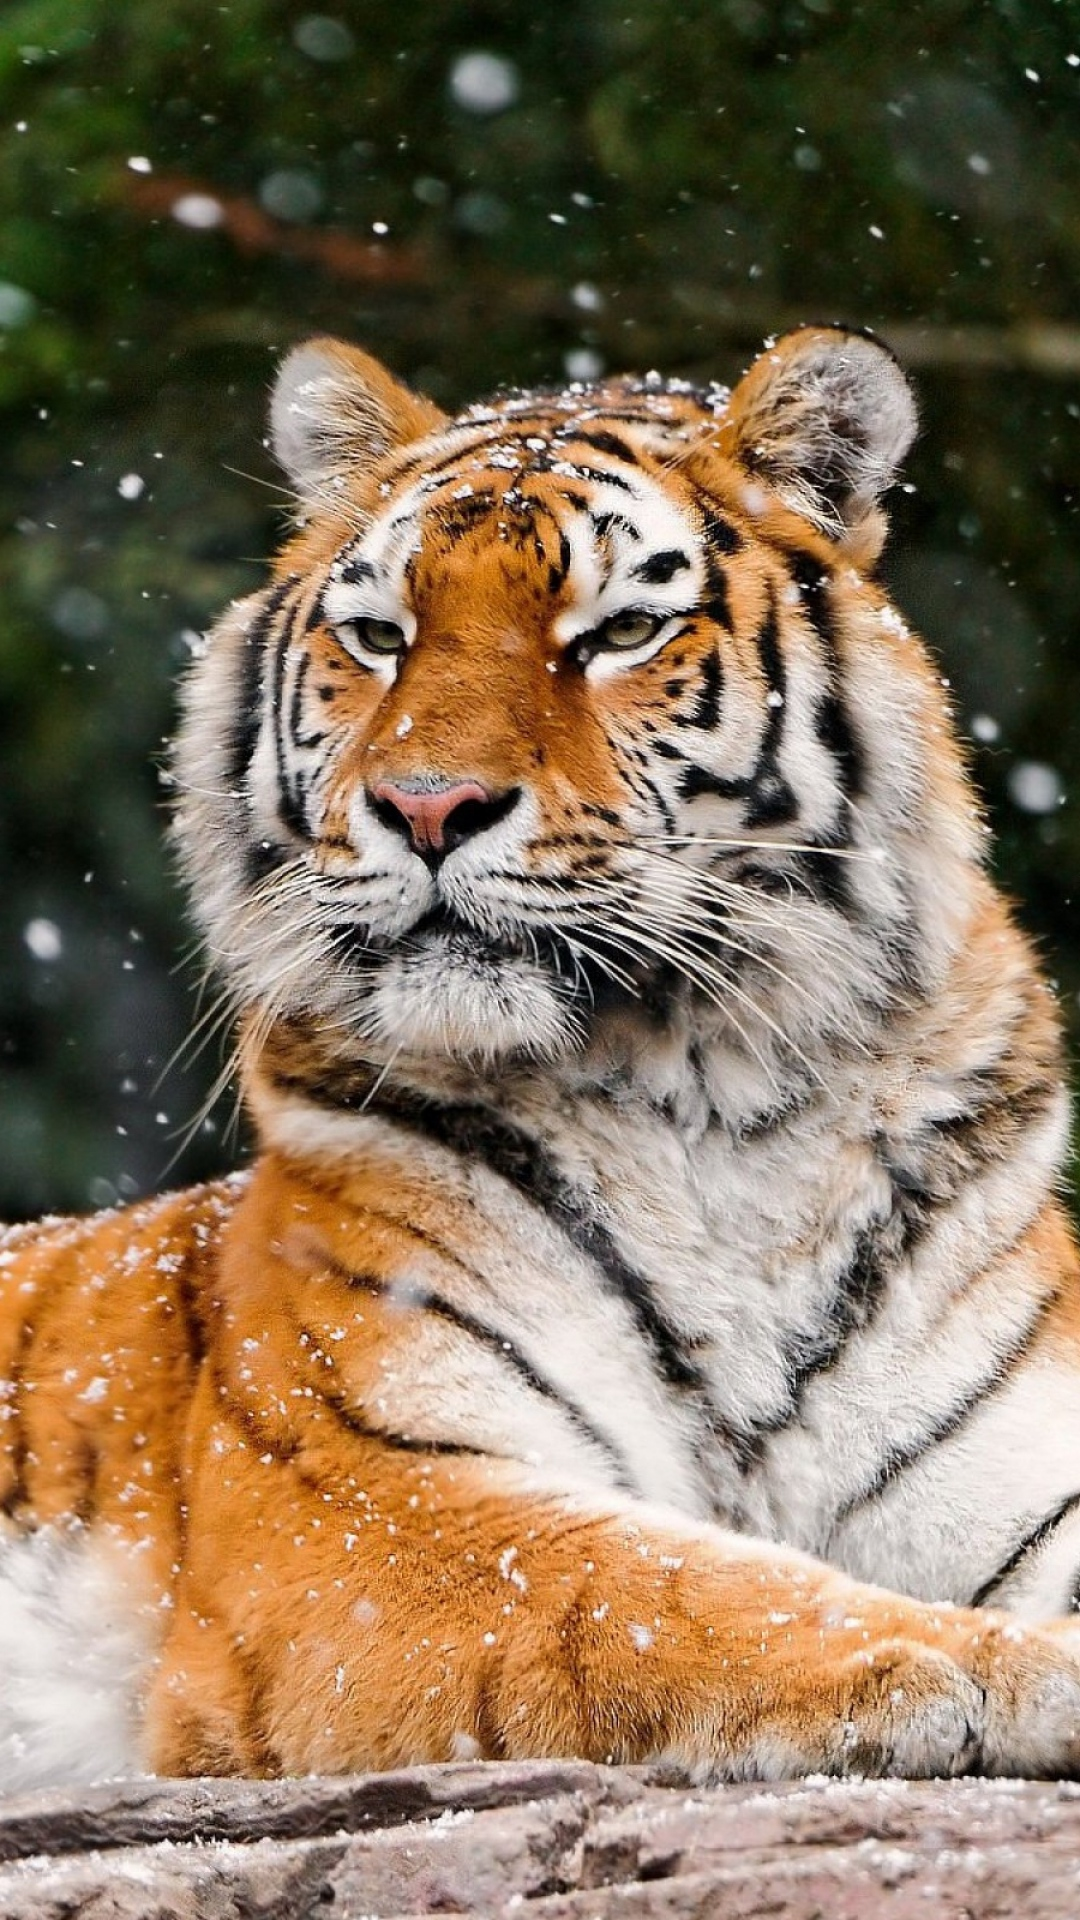 Tiger Animal Wallpaper Snow Tiger Best Htc One Wallpapers Free And Easy To